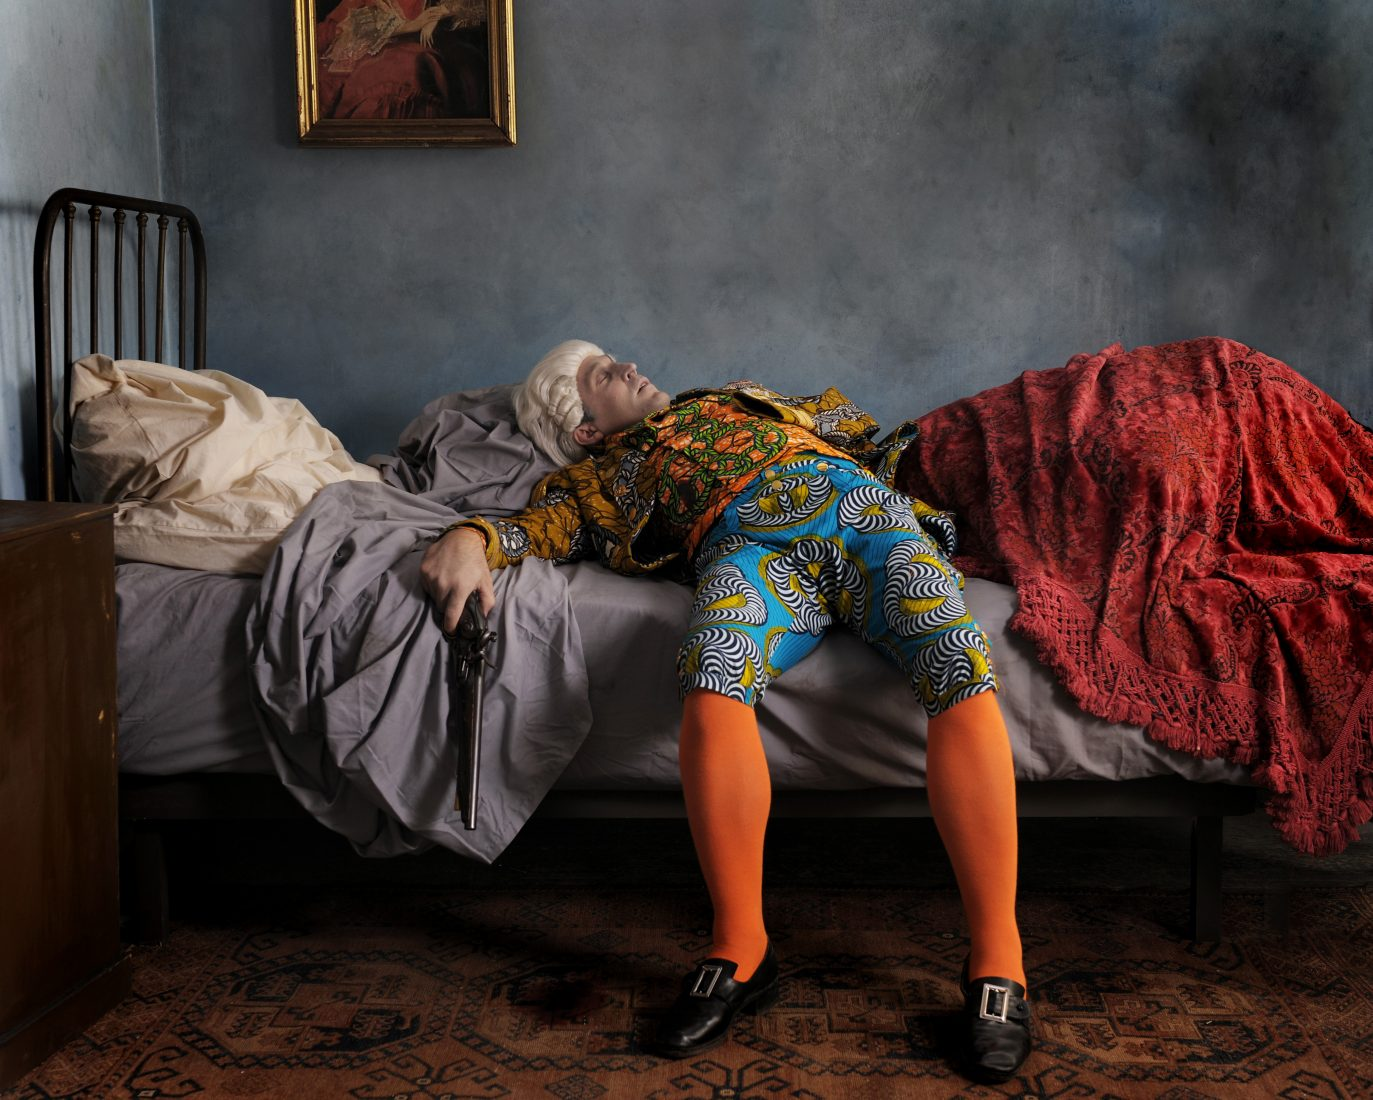 Fake Death Picture (The Suicide - Manet), 2011, digital chromogenic print.